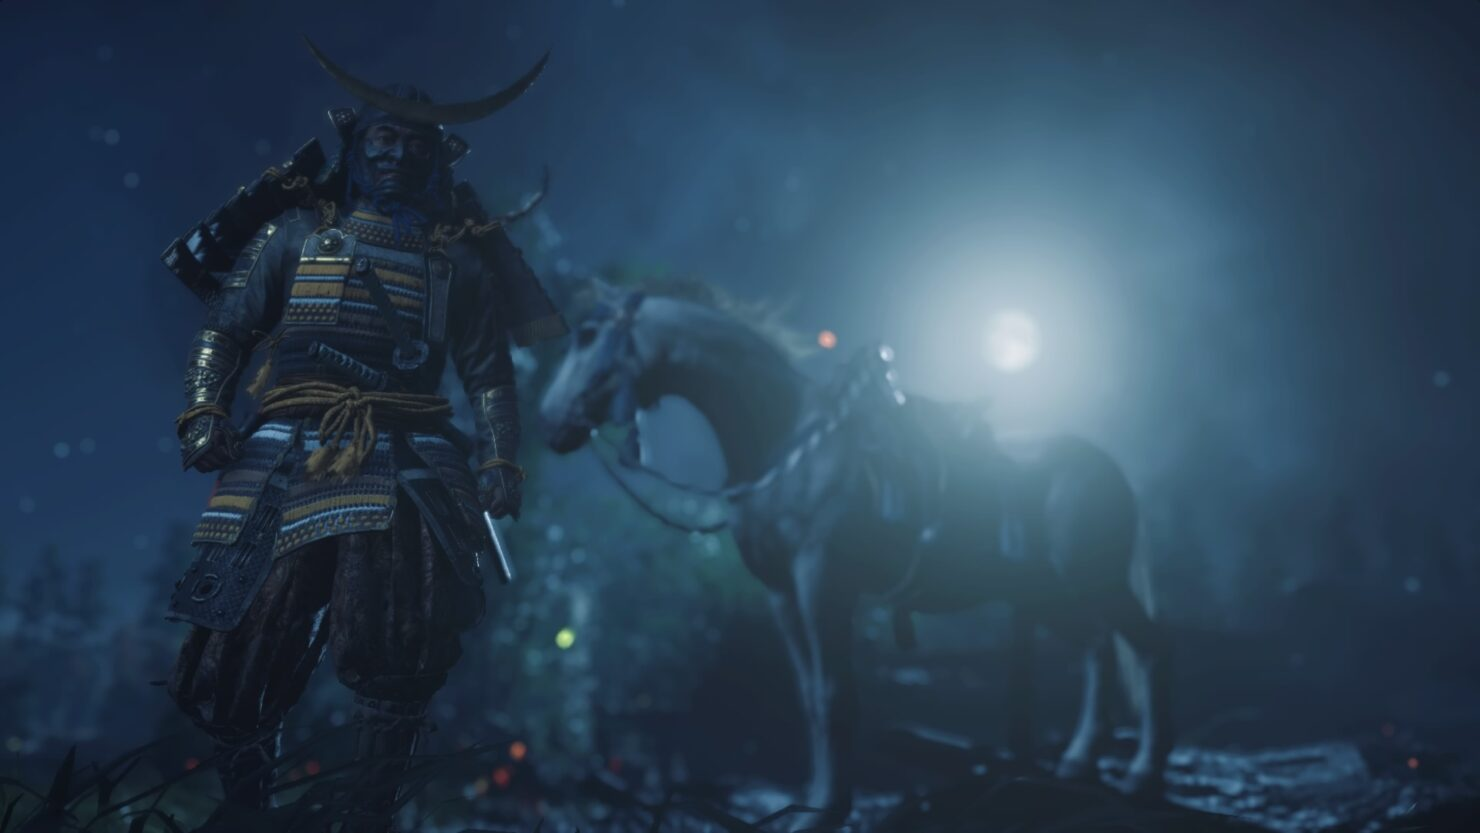 Ghost of Tsushima ps5 boost mode 60fps loading save transfer